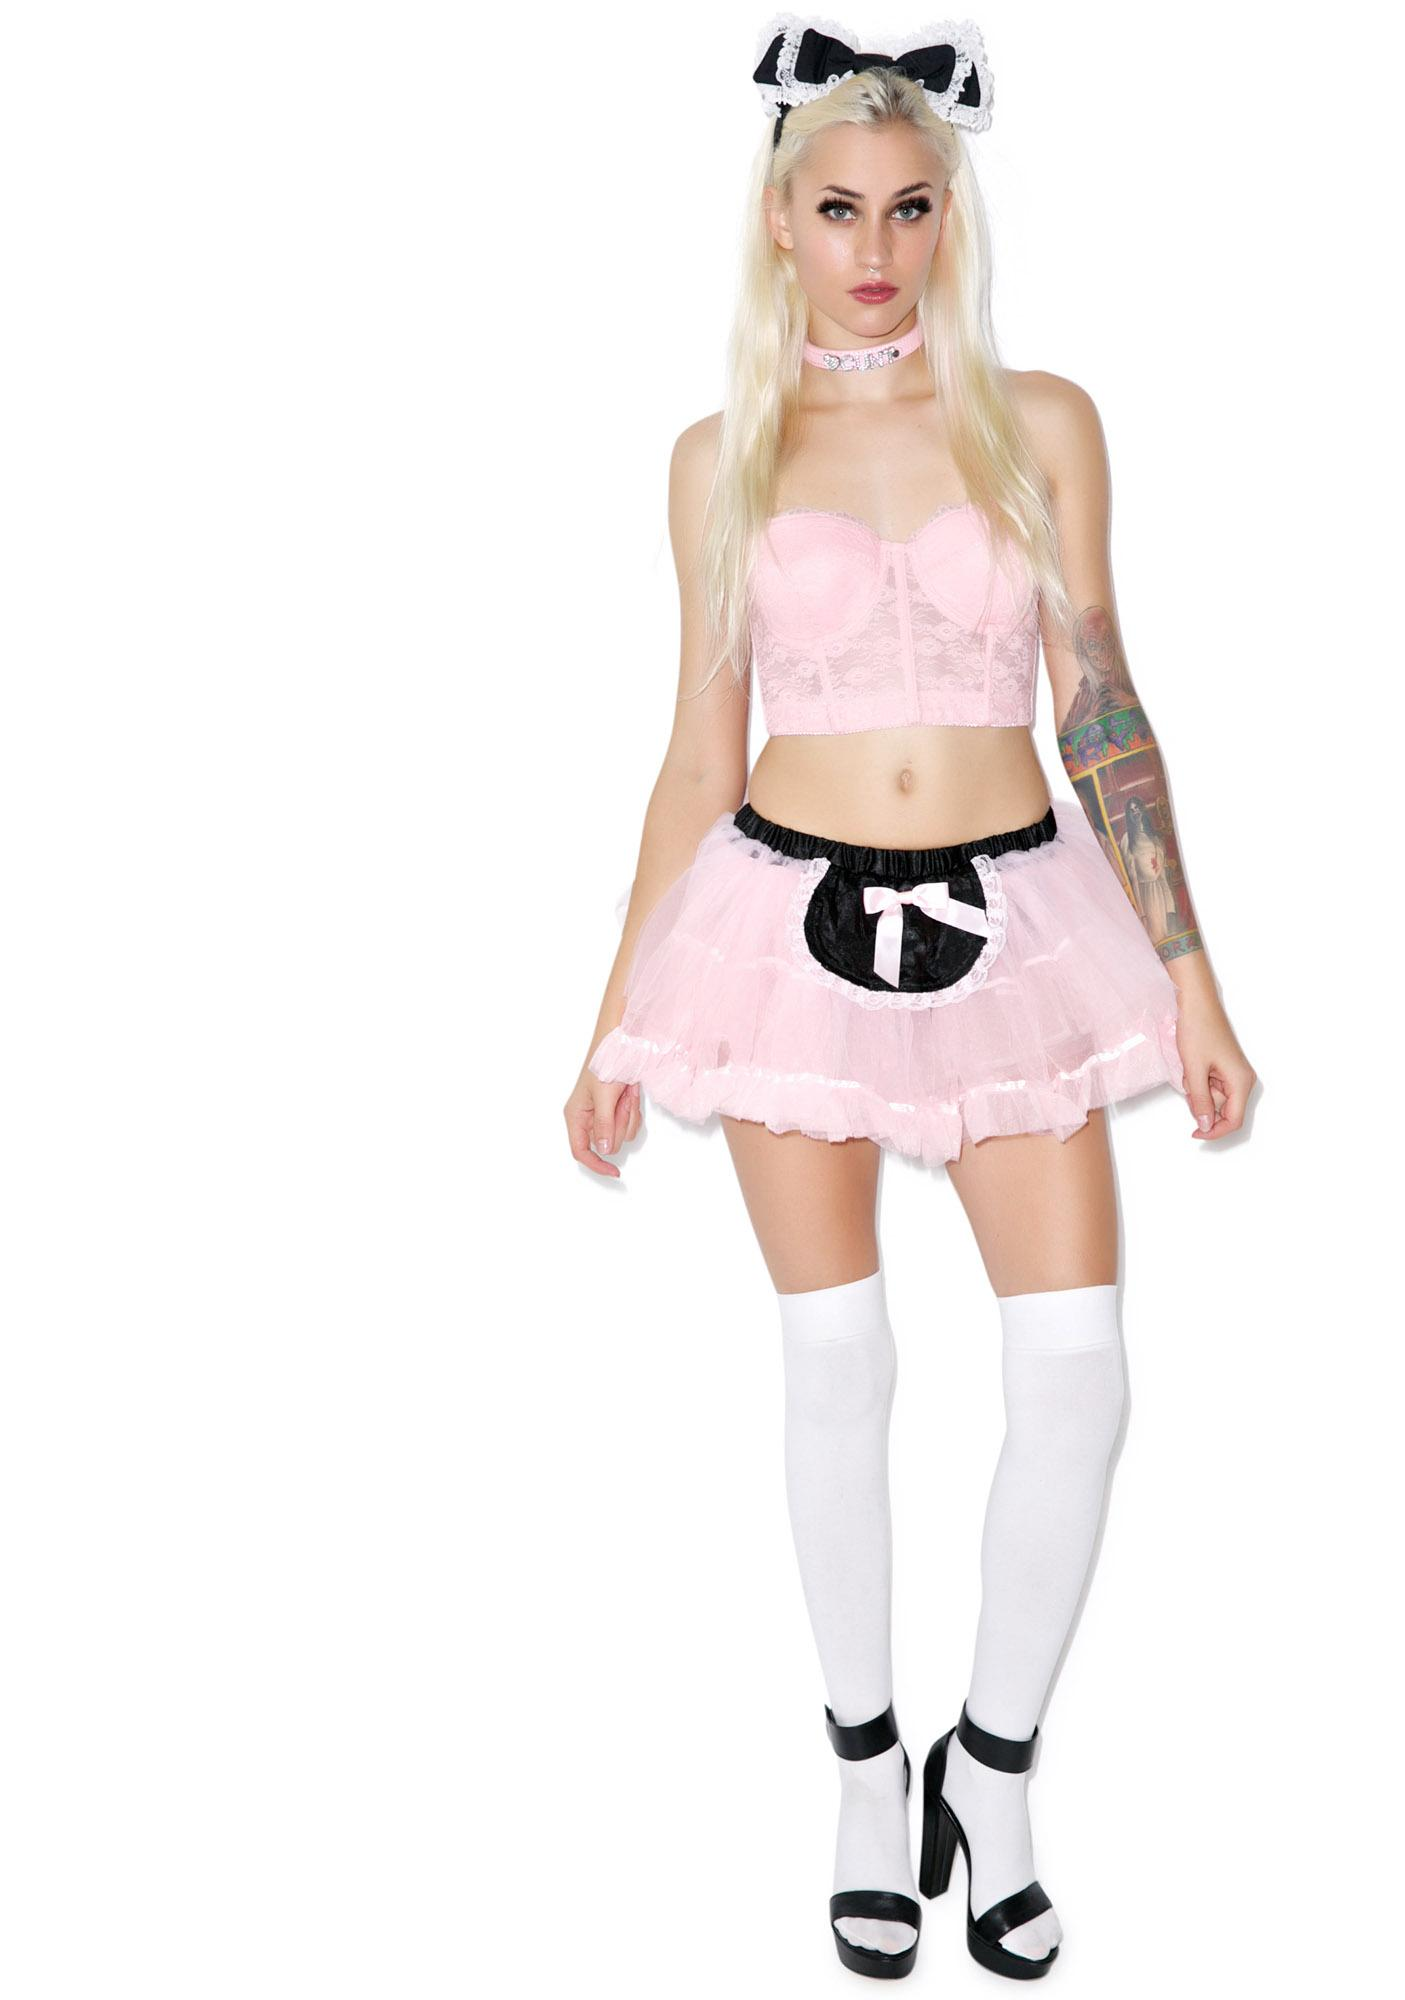 Lip Service Miss Frenchy The Maid Tutu Skirt